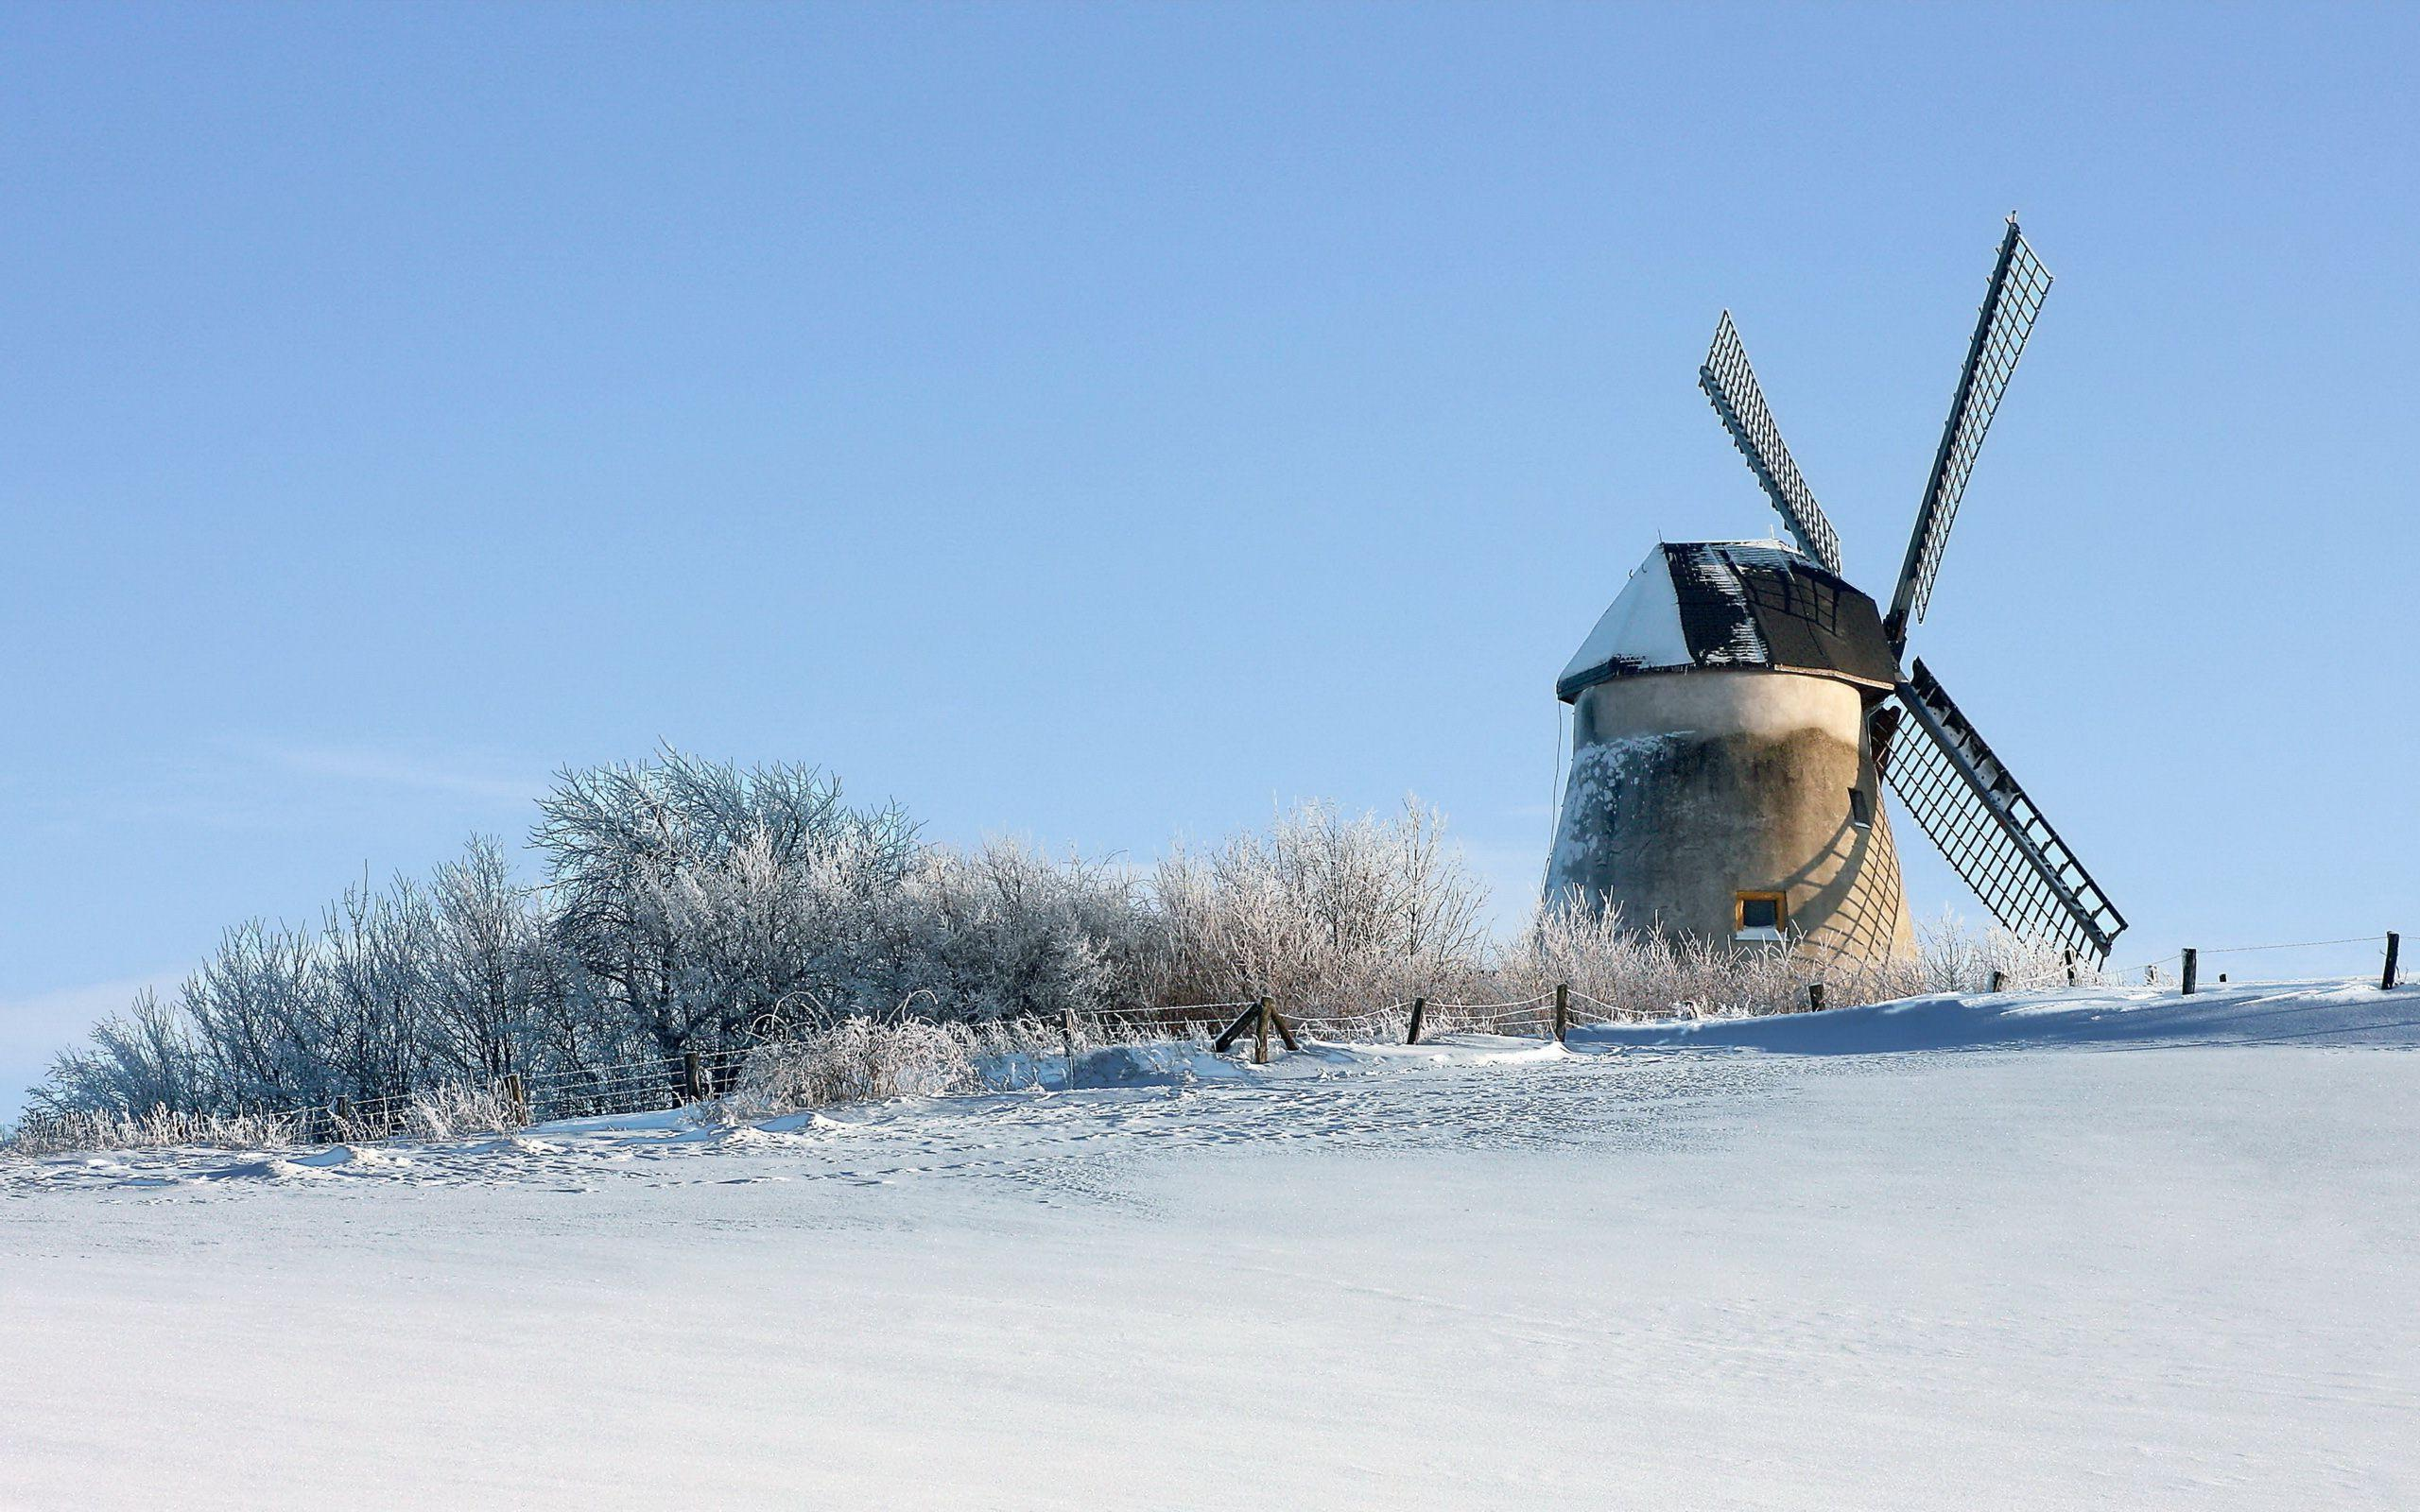 Cute Merry Christmas Wallpaper 2016 Hd Windmill In The Winter Wallpaper Download Free 150116